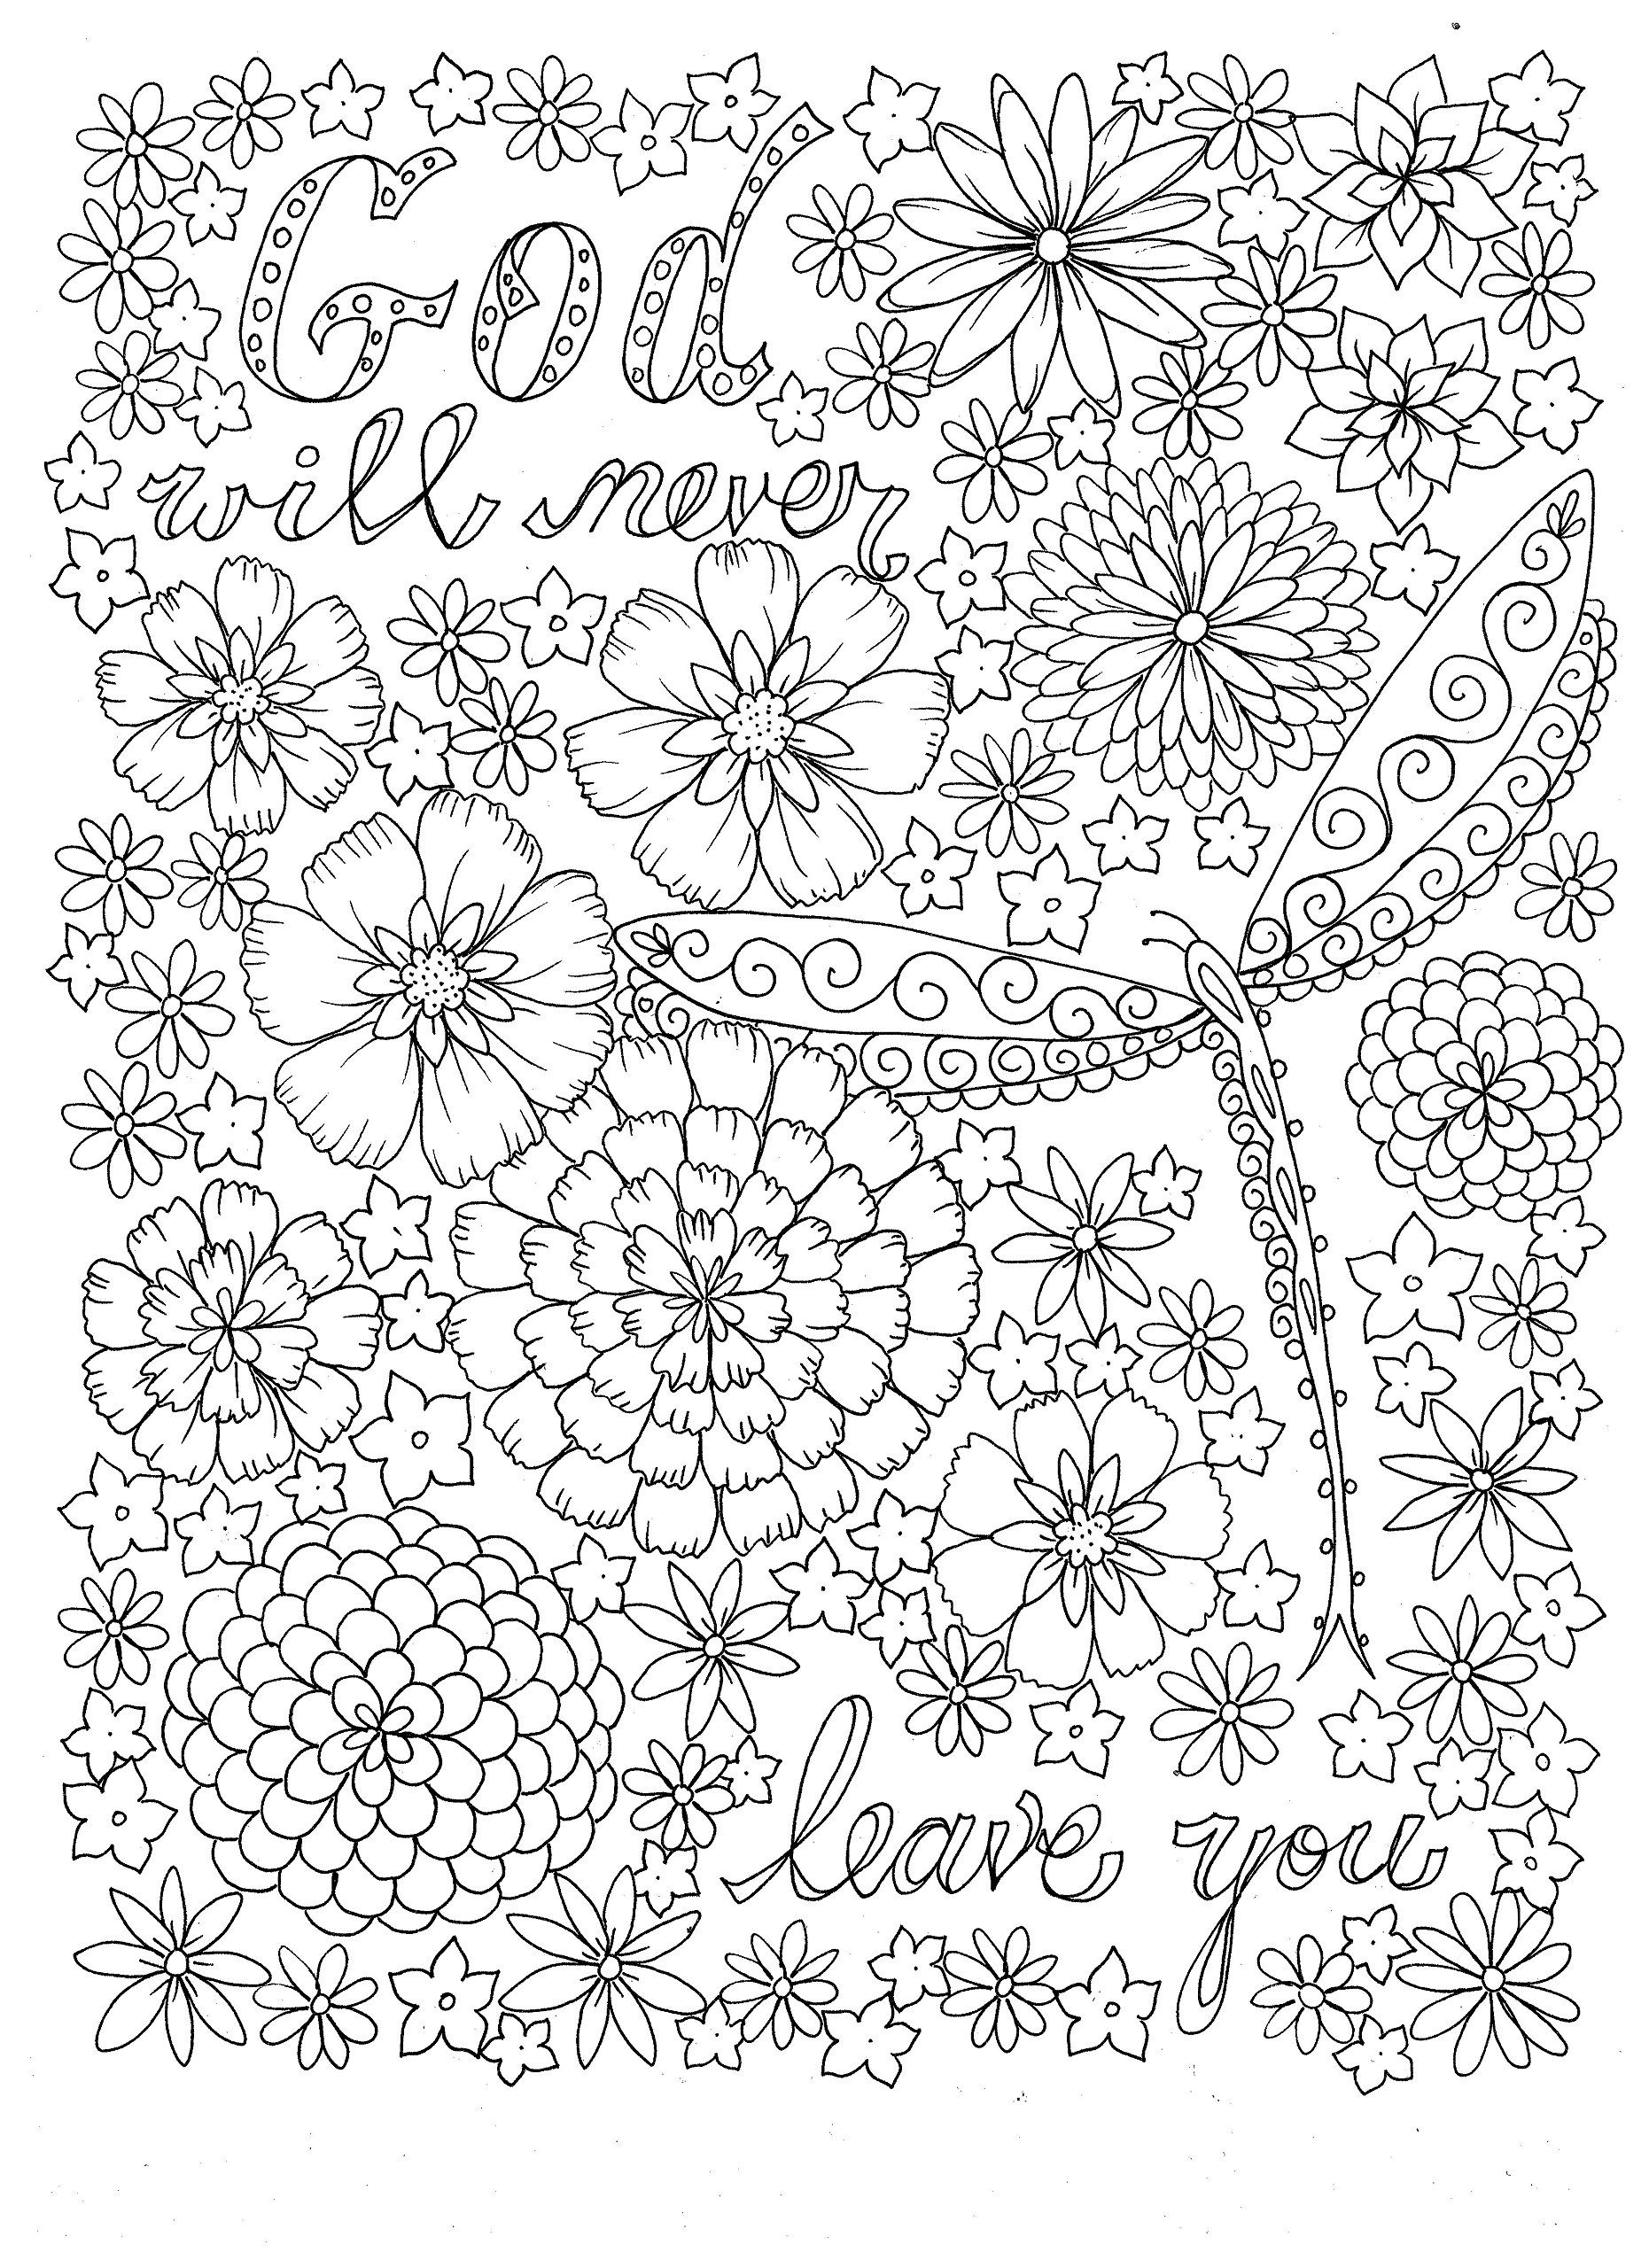 bible coloring pages for adults - HD 1861×2560